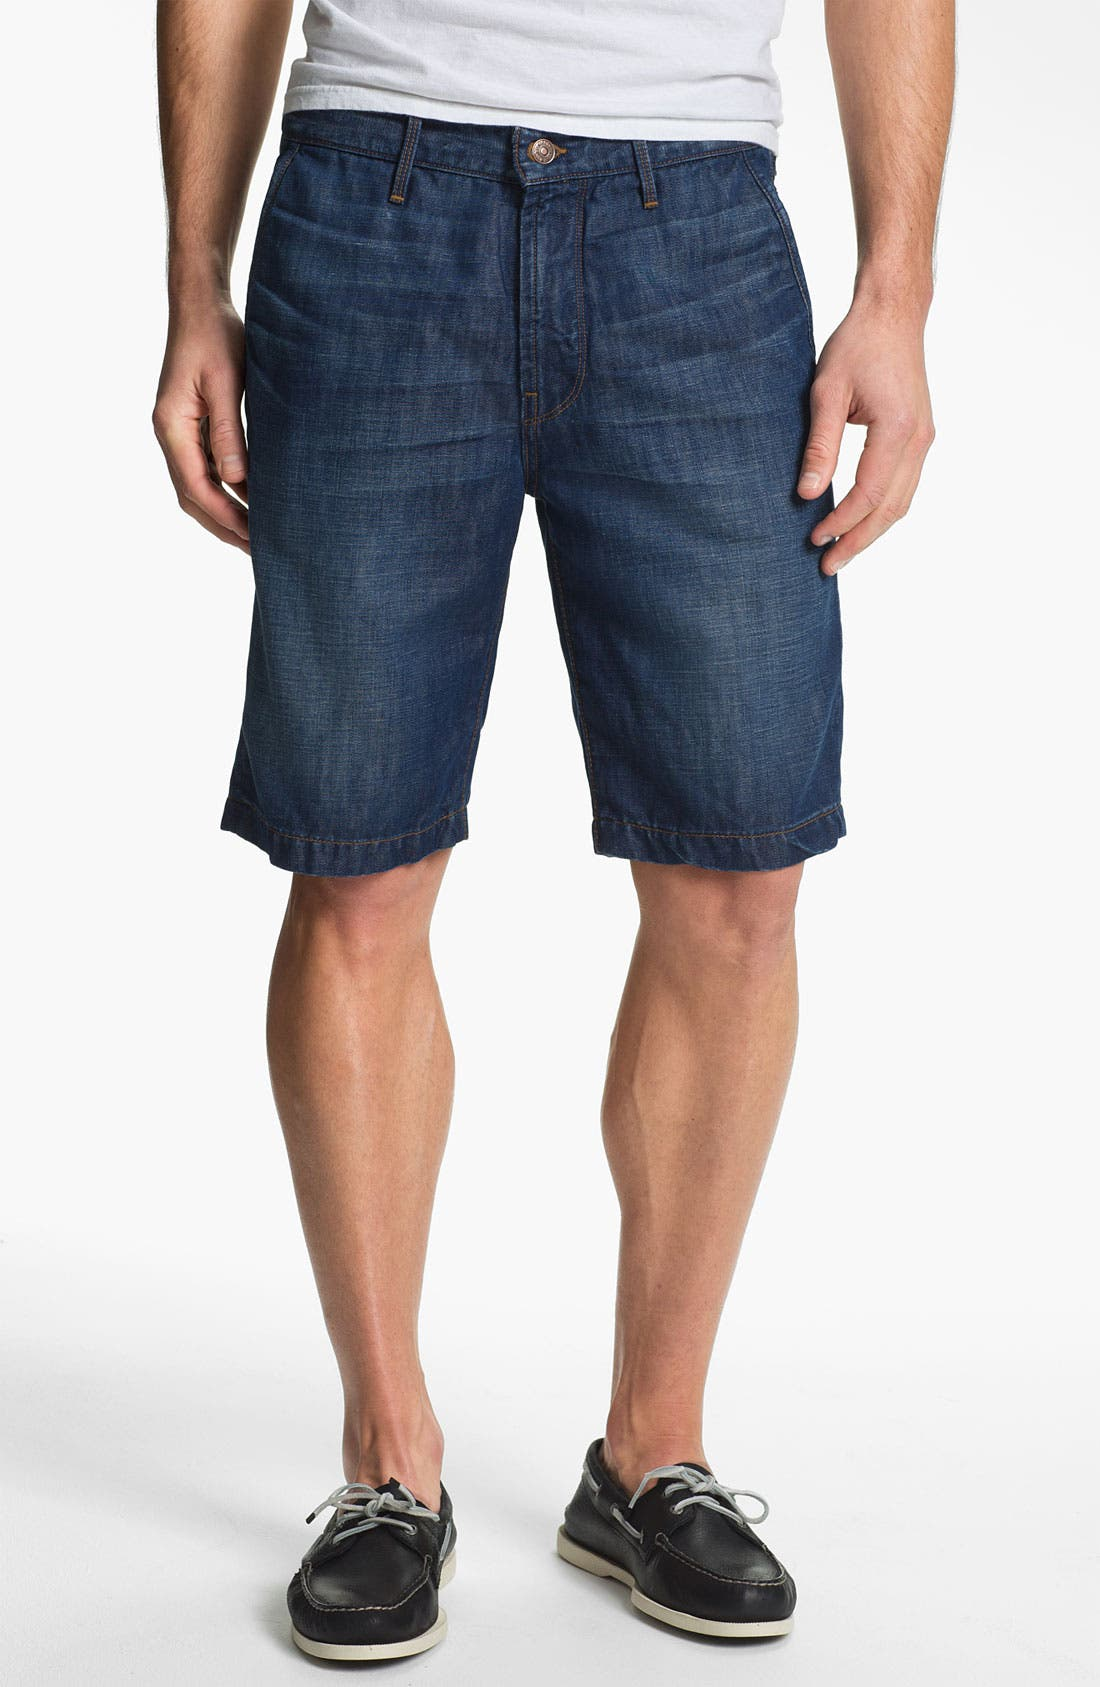 Alternate Image 1 Selected - 7 For All Mankind® Cotton & Linen Denim Shorts